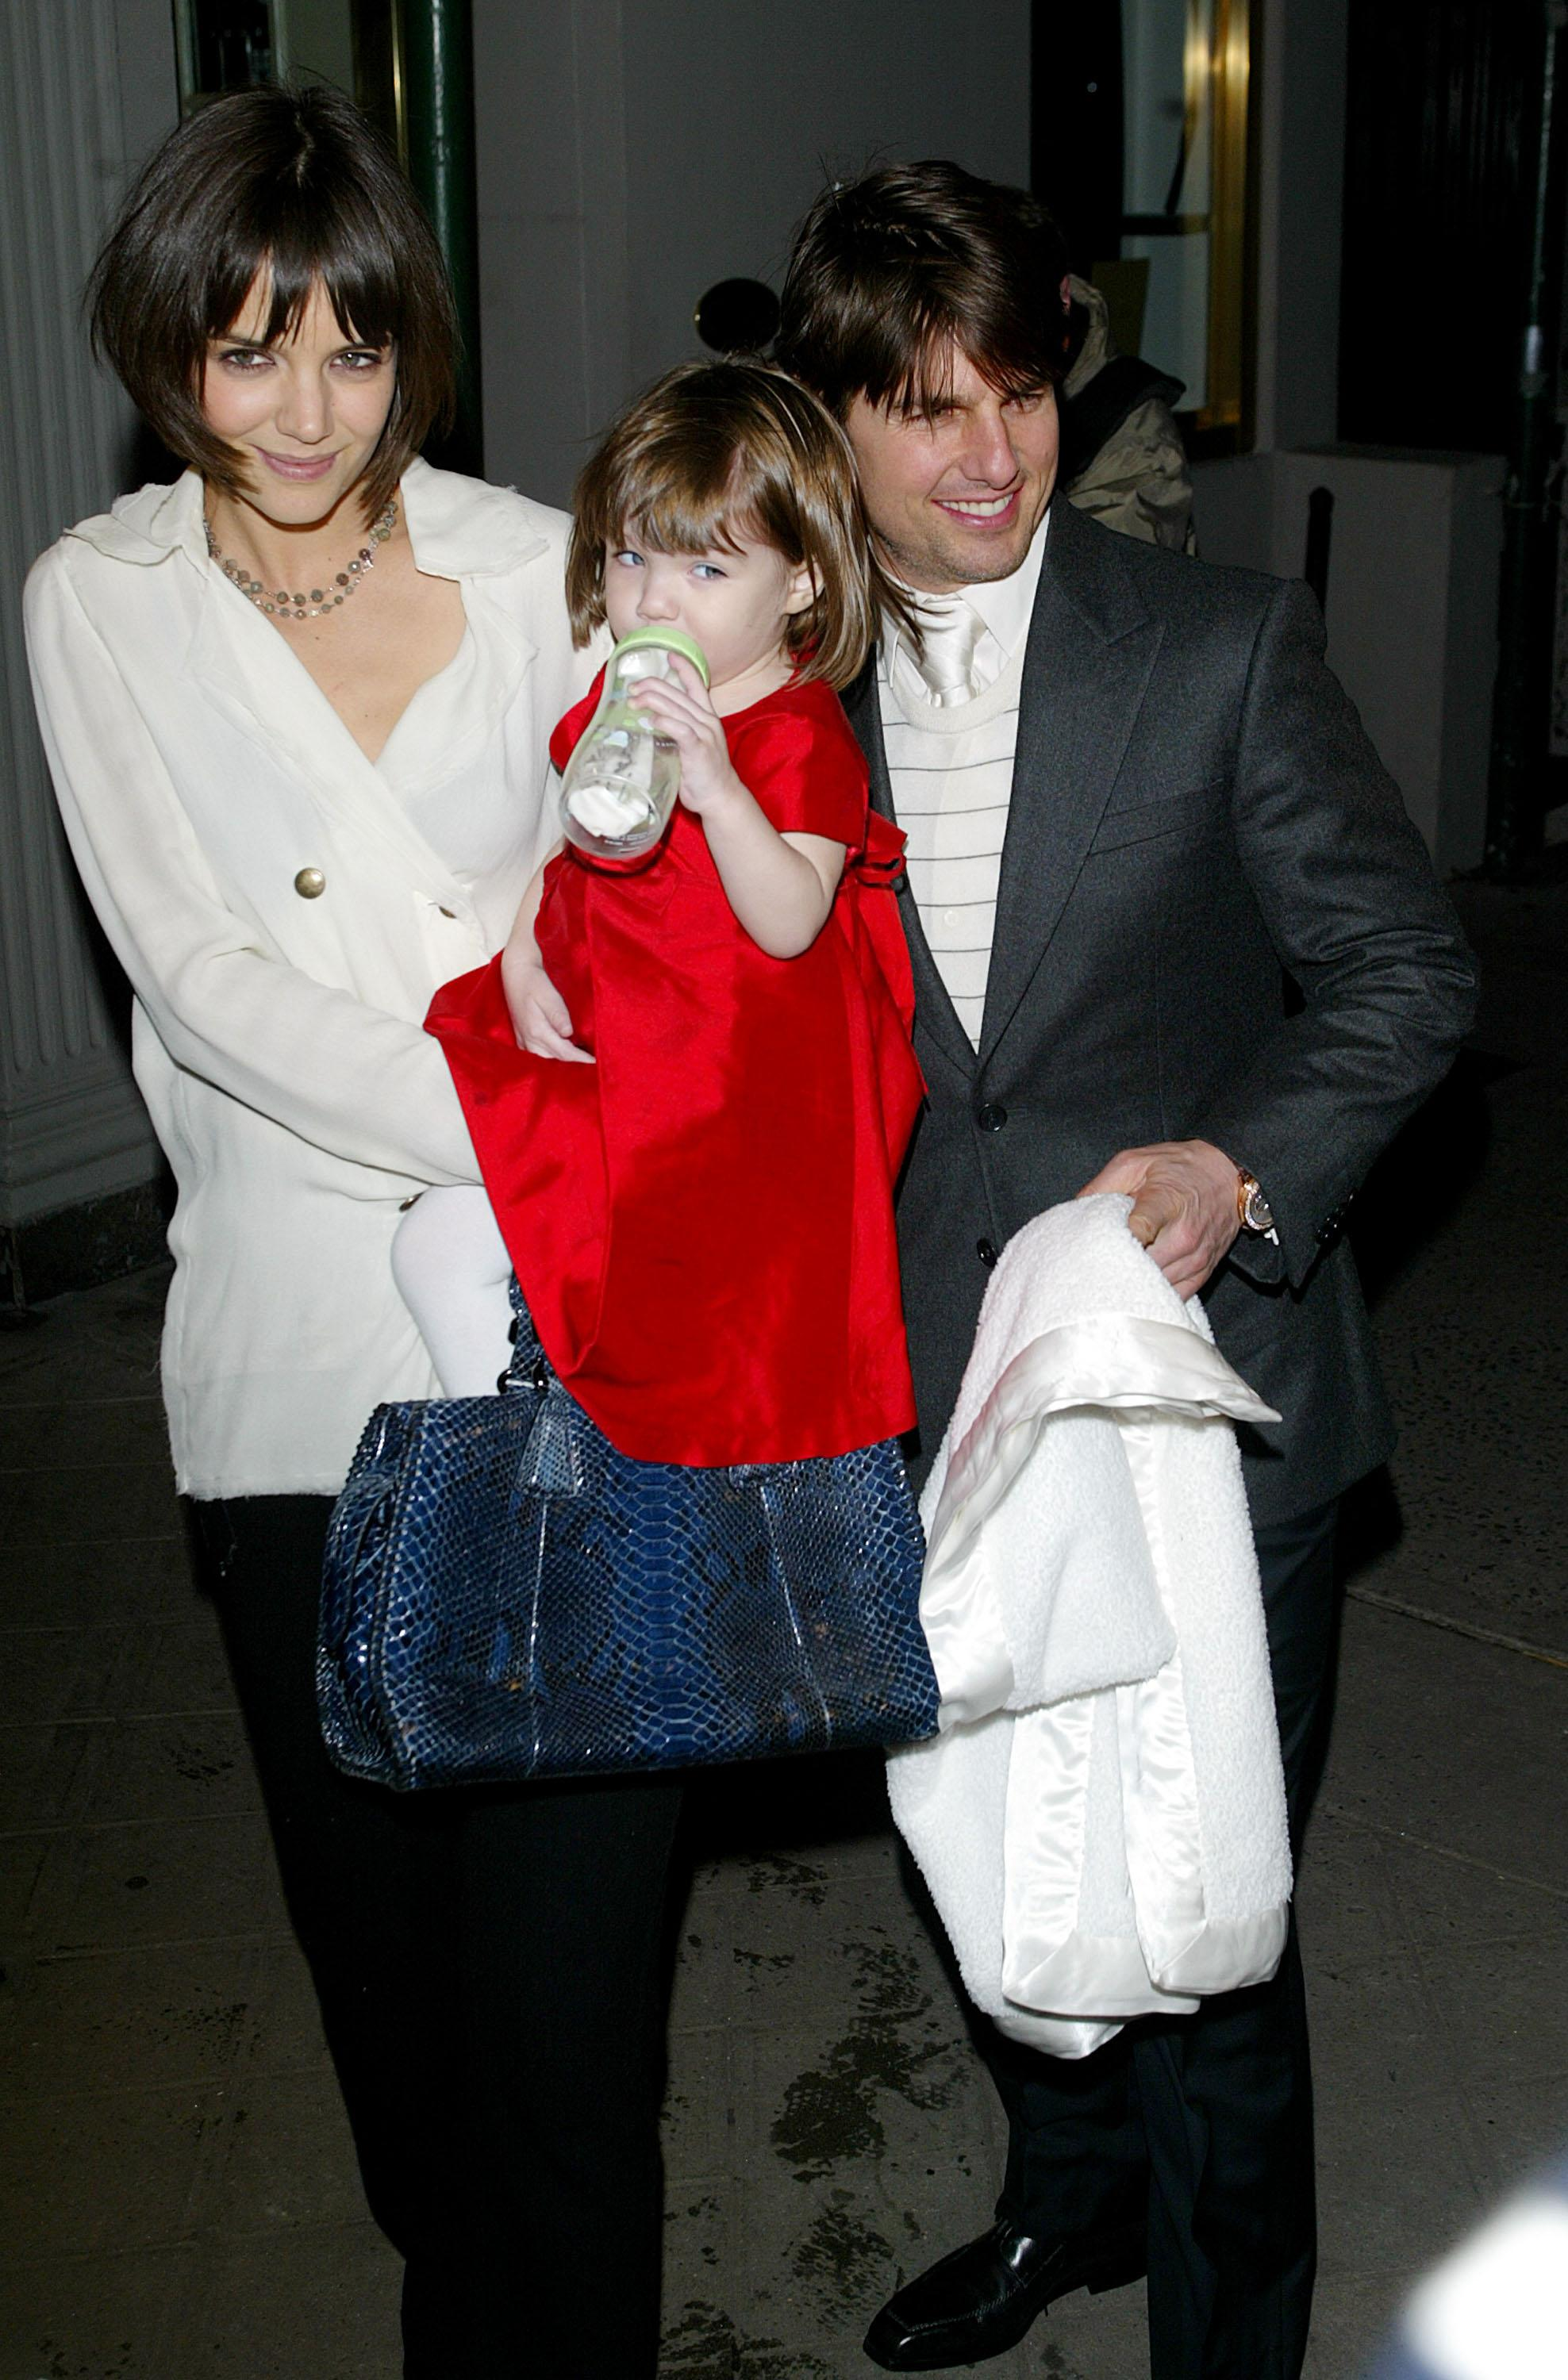 Suri Cruise in Early Rehearsals to Play Anne Frank